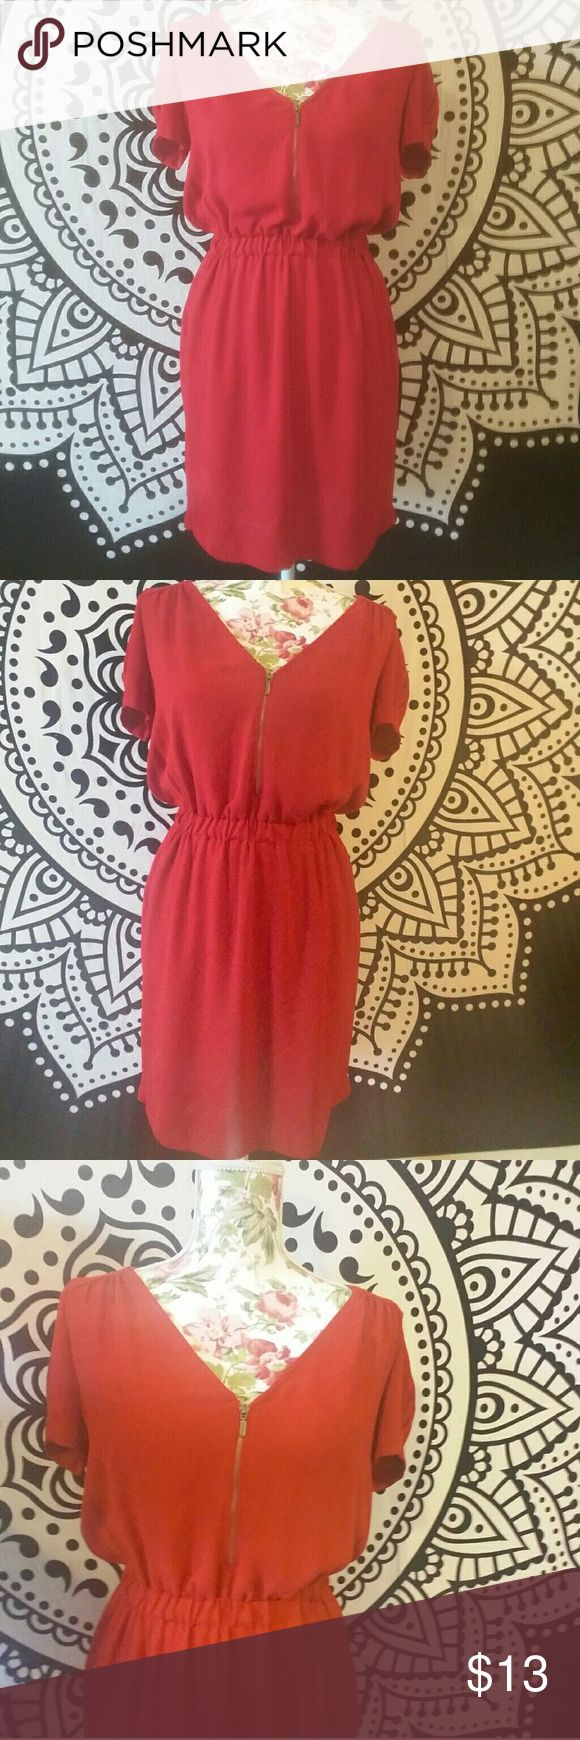 Zara Red Dress (flawed) Like new condition with 1 flaw!!!! A tiny hole near the front zipper (shown in the last photo). Measurements on request! Open to offers. Zara Dresses Mini